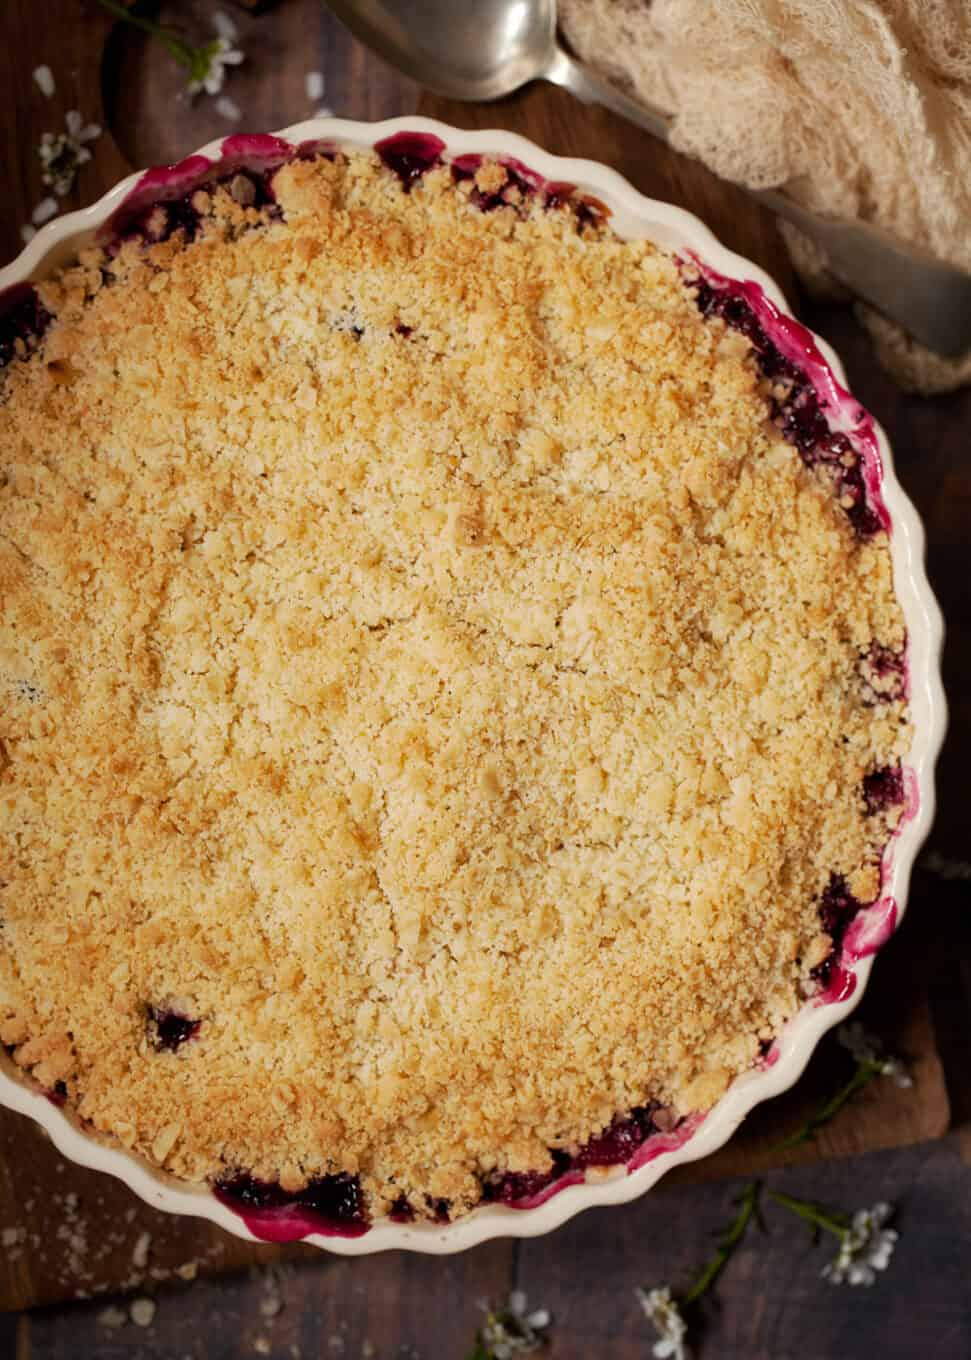 freshly baked apple and blackcurrant crumble